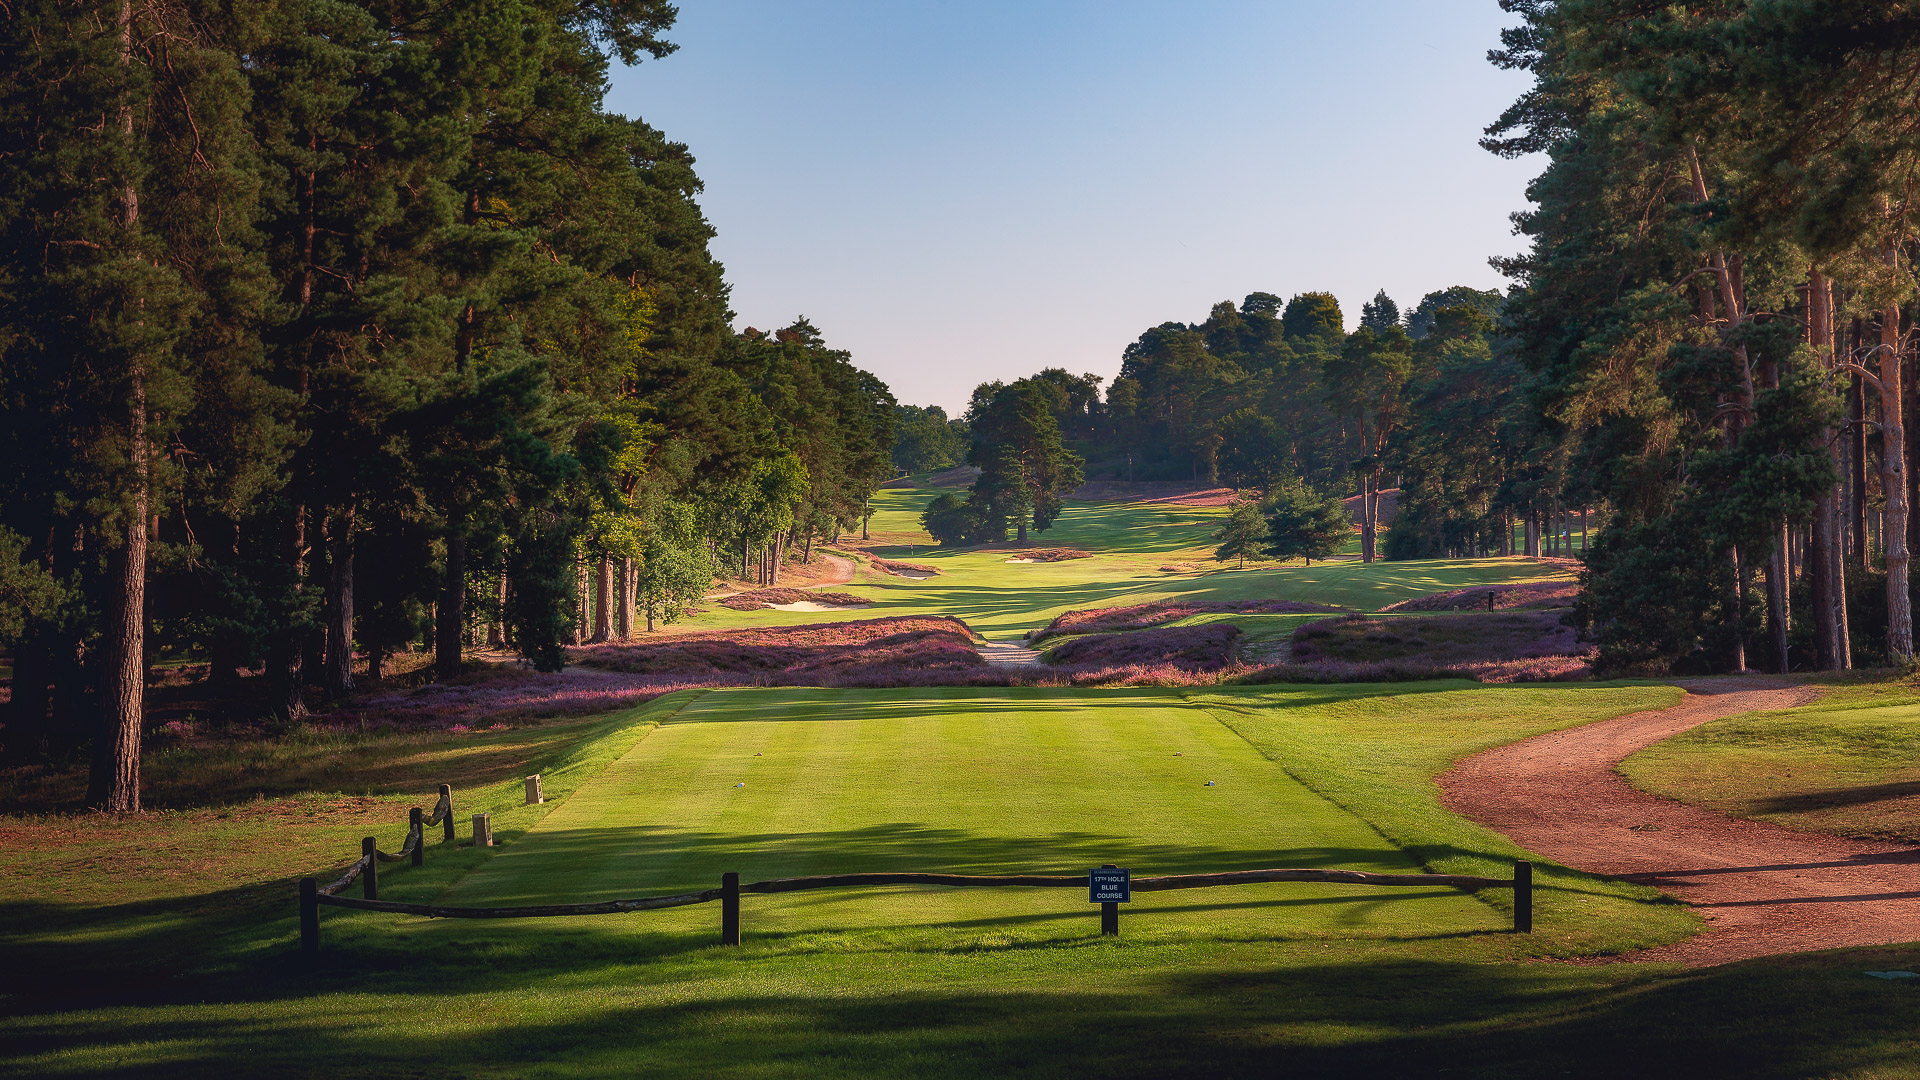 17th-Hole-St-Georges-Hill-Golf-Club-2520-Edit